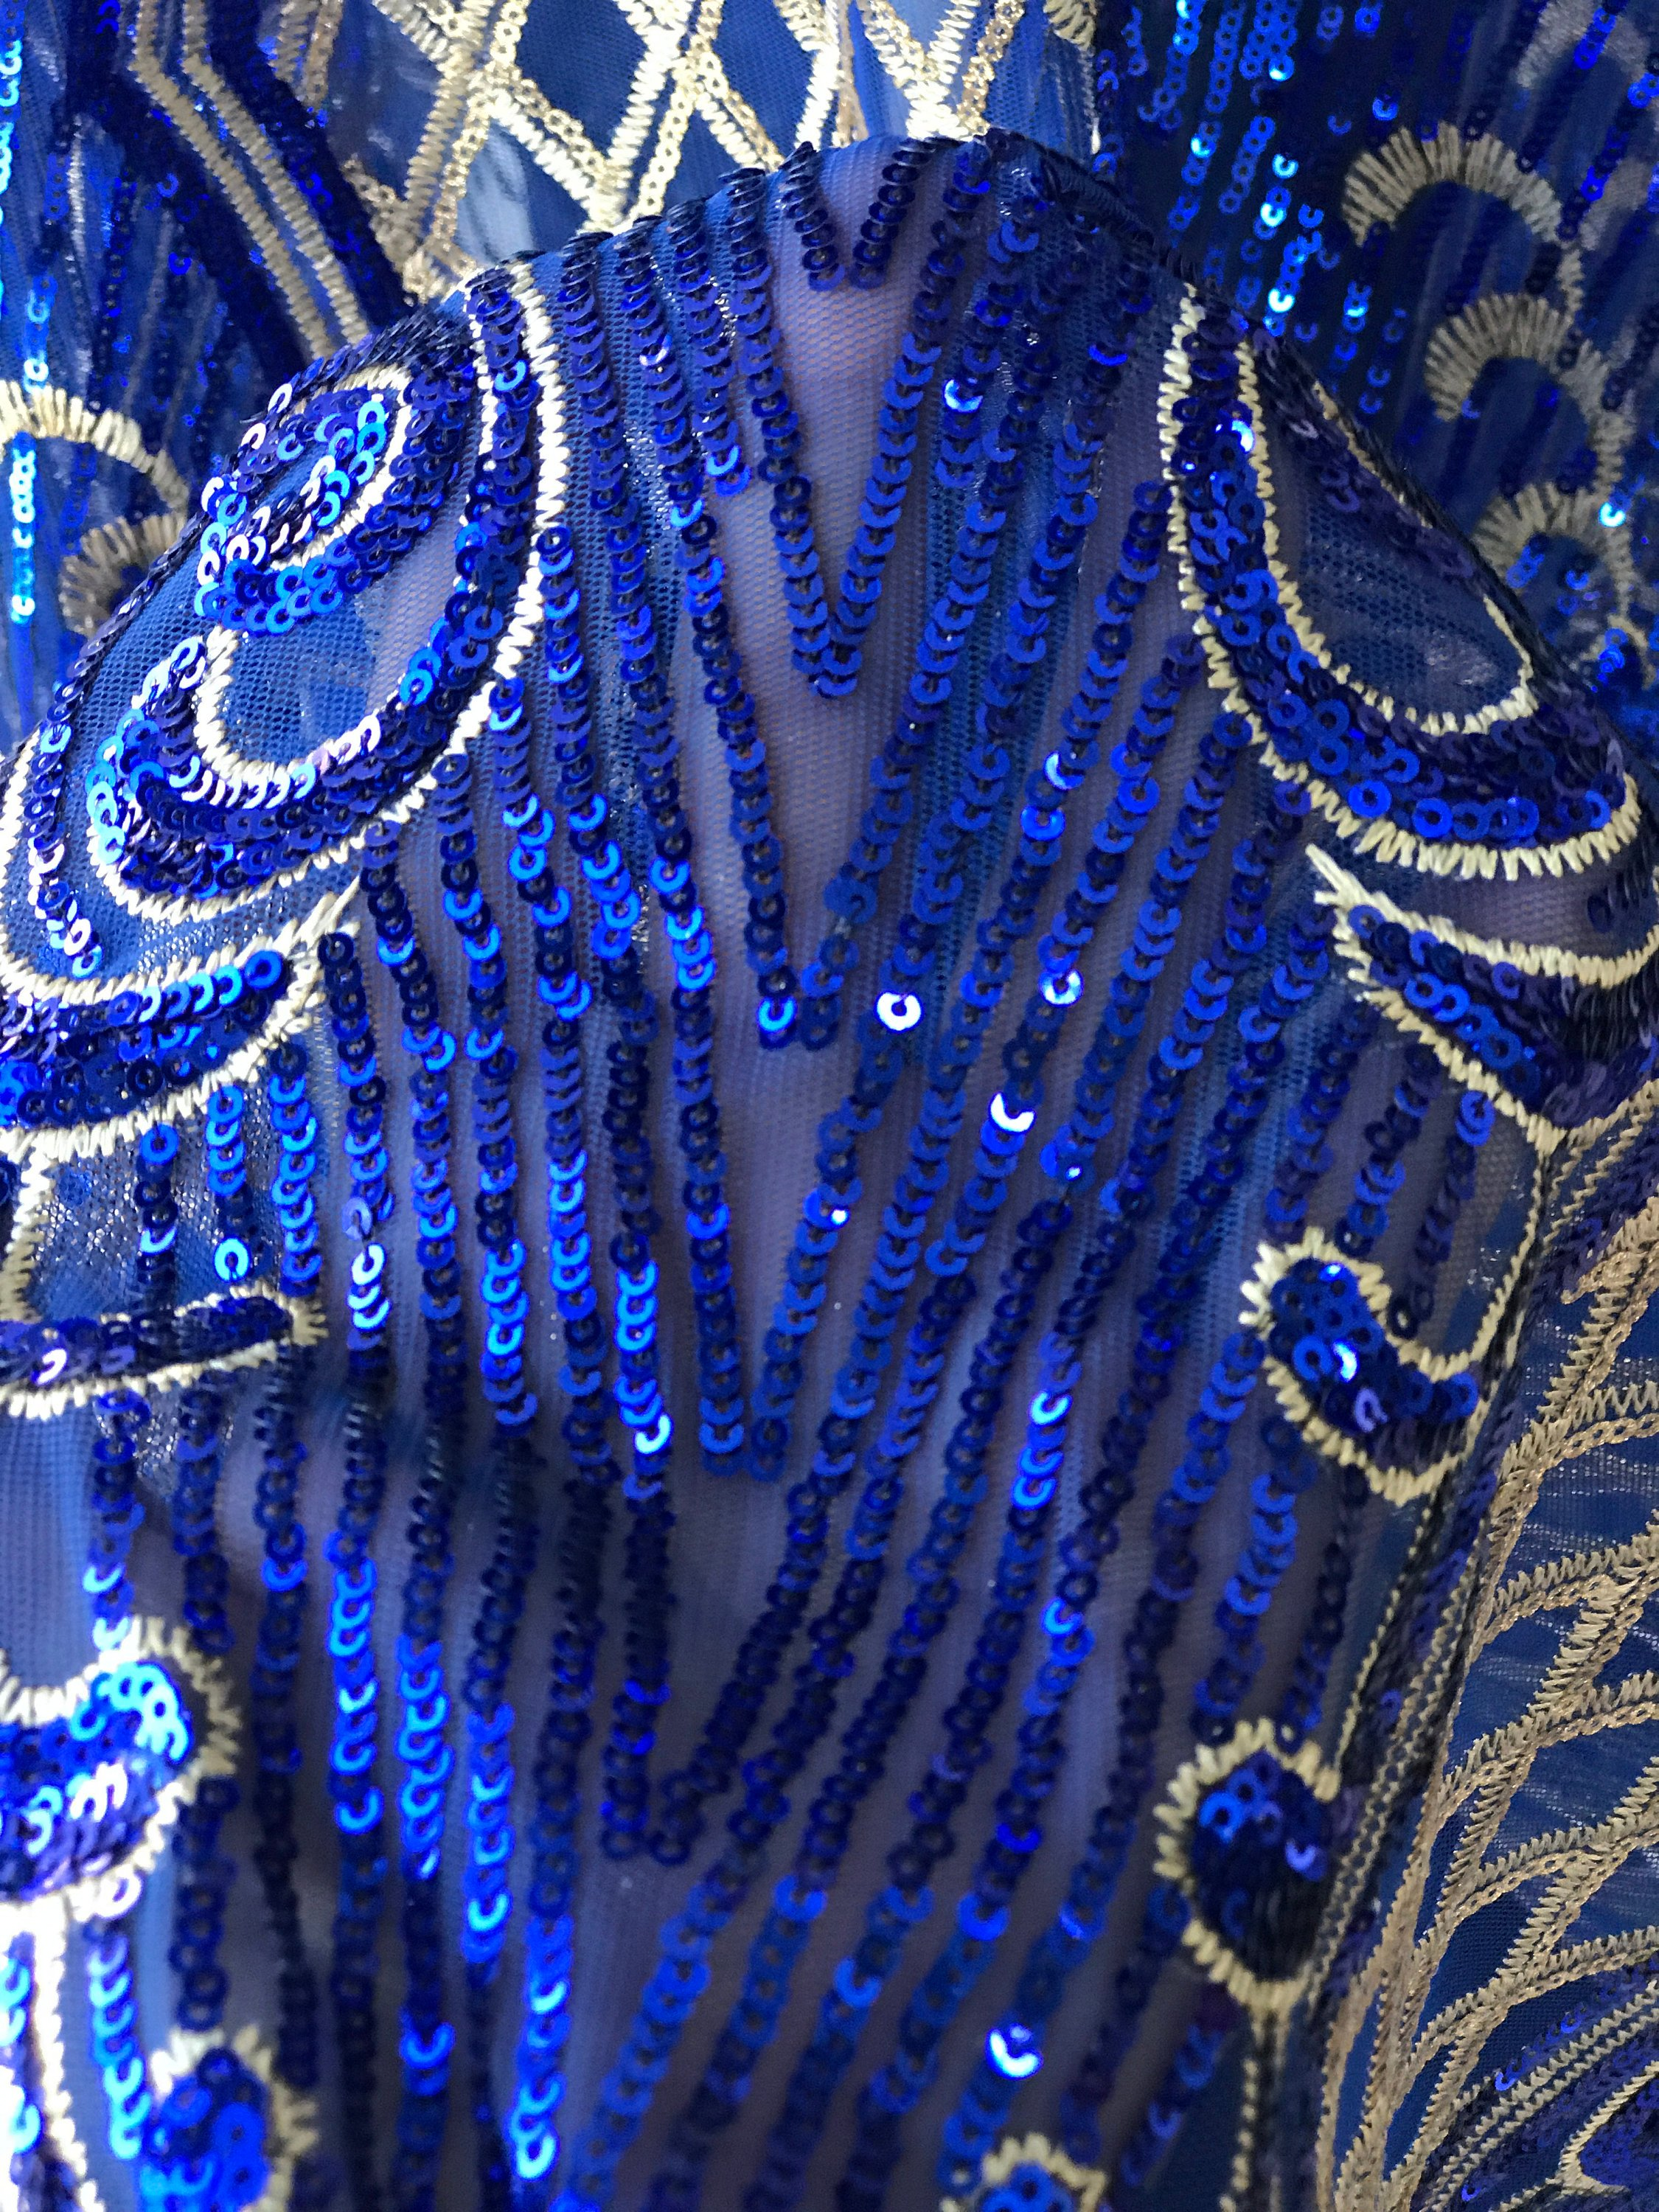 Gold on cobalt blue sequins lace fabric Baroque design evening dress bridal